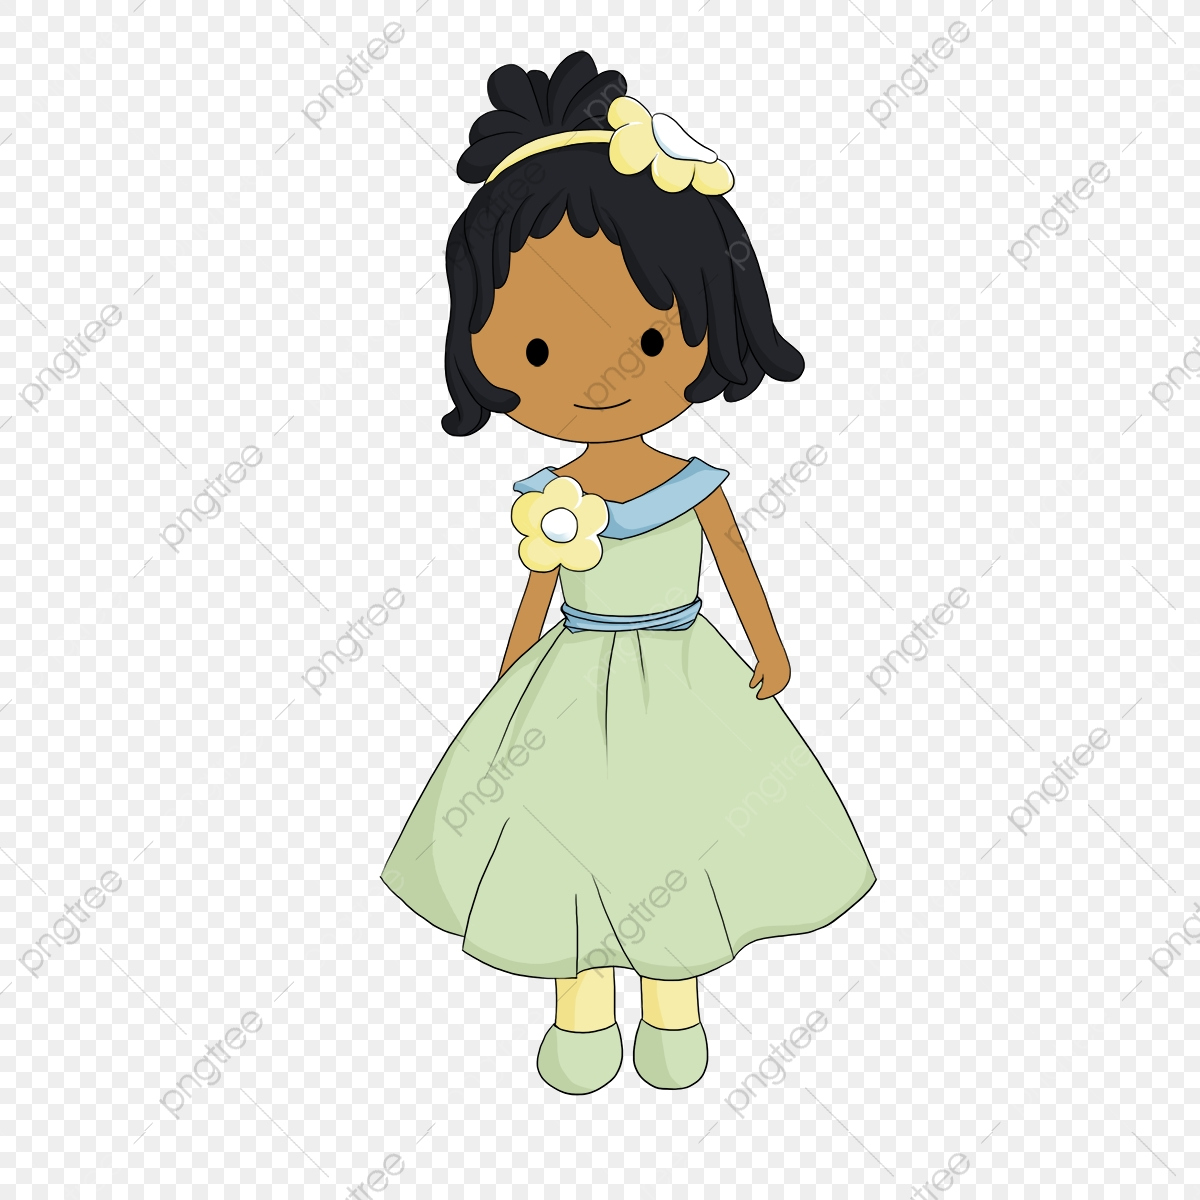 Princess Clipart Png Images Vector And Psd Files Free Download On Pngtree